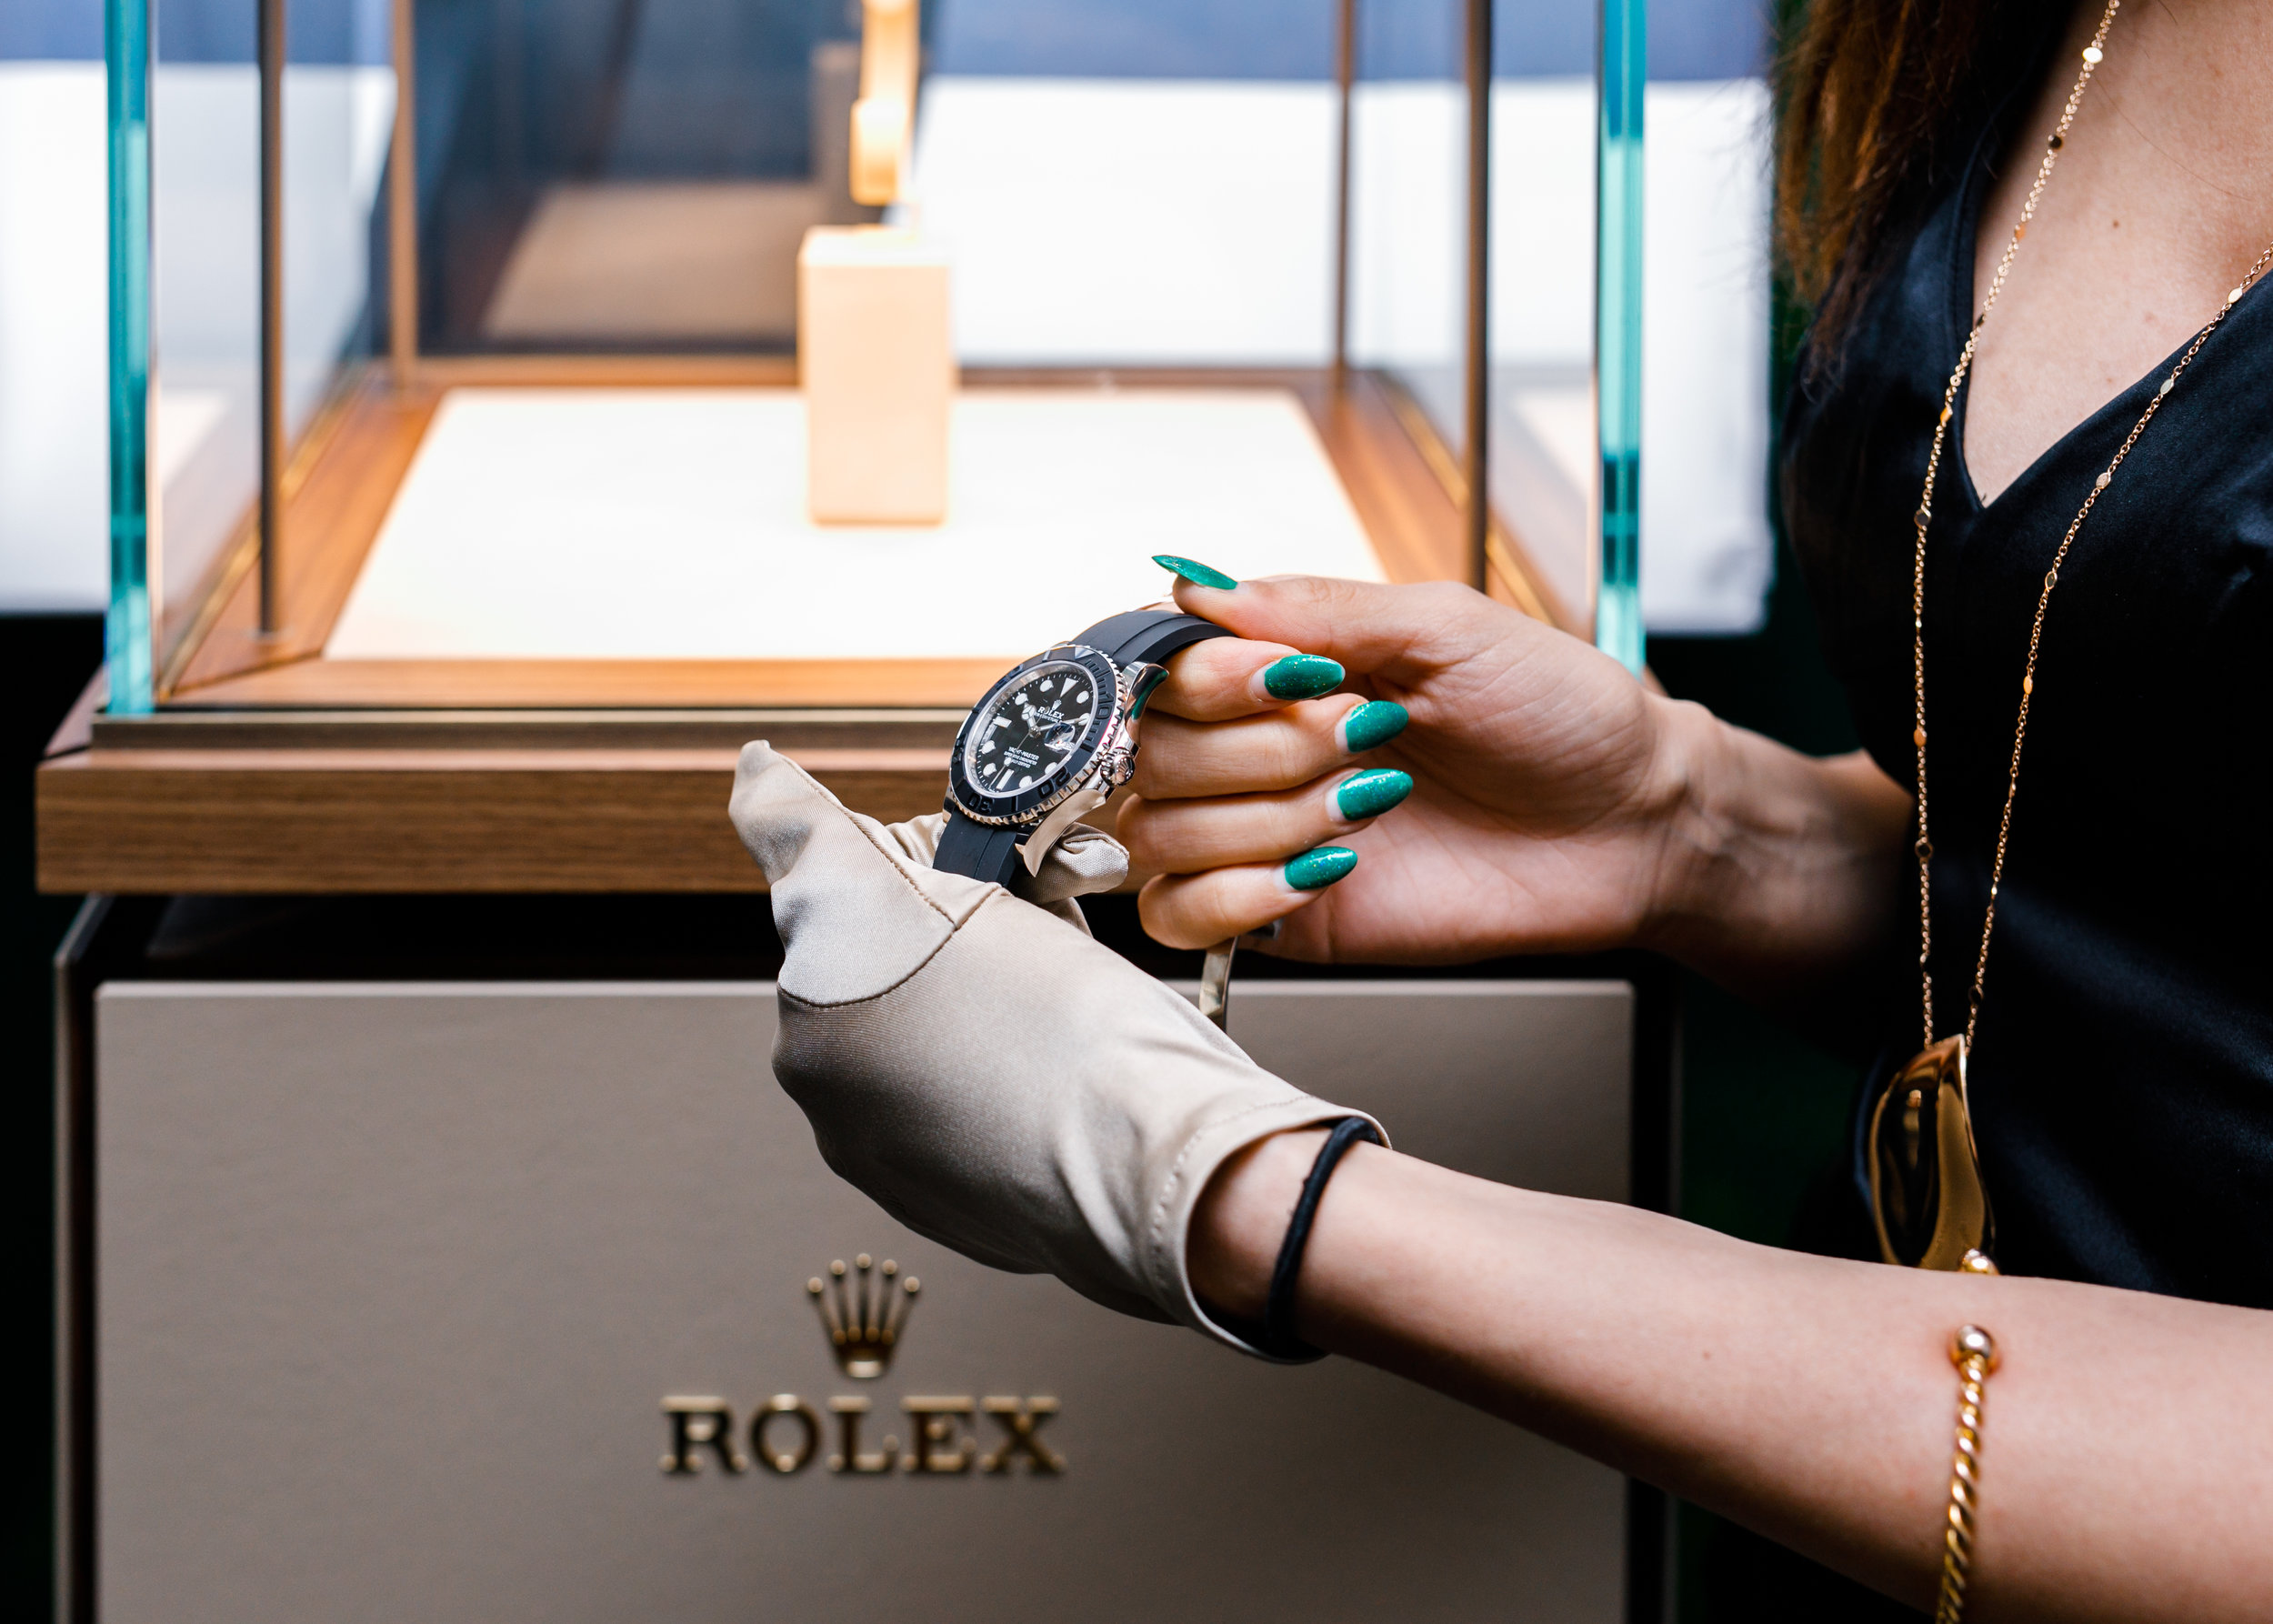 RDV-Rolex-Event-2019-HR-054-5195.JPG